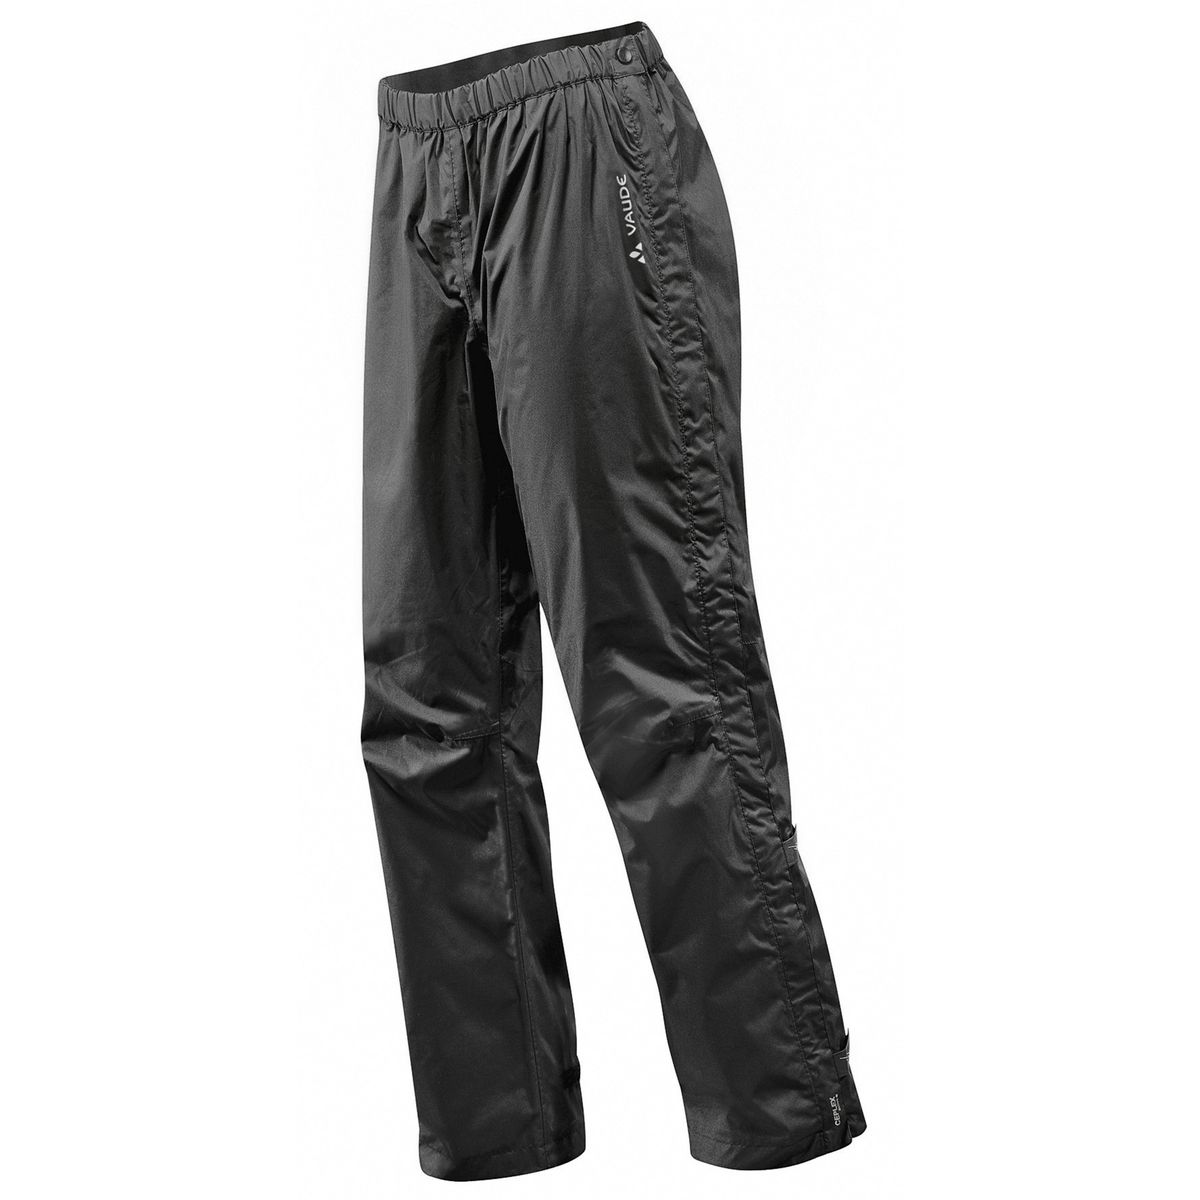 FLUID FULL ZIP PANTS S/S WOMEN – short inseam –